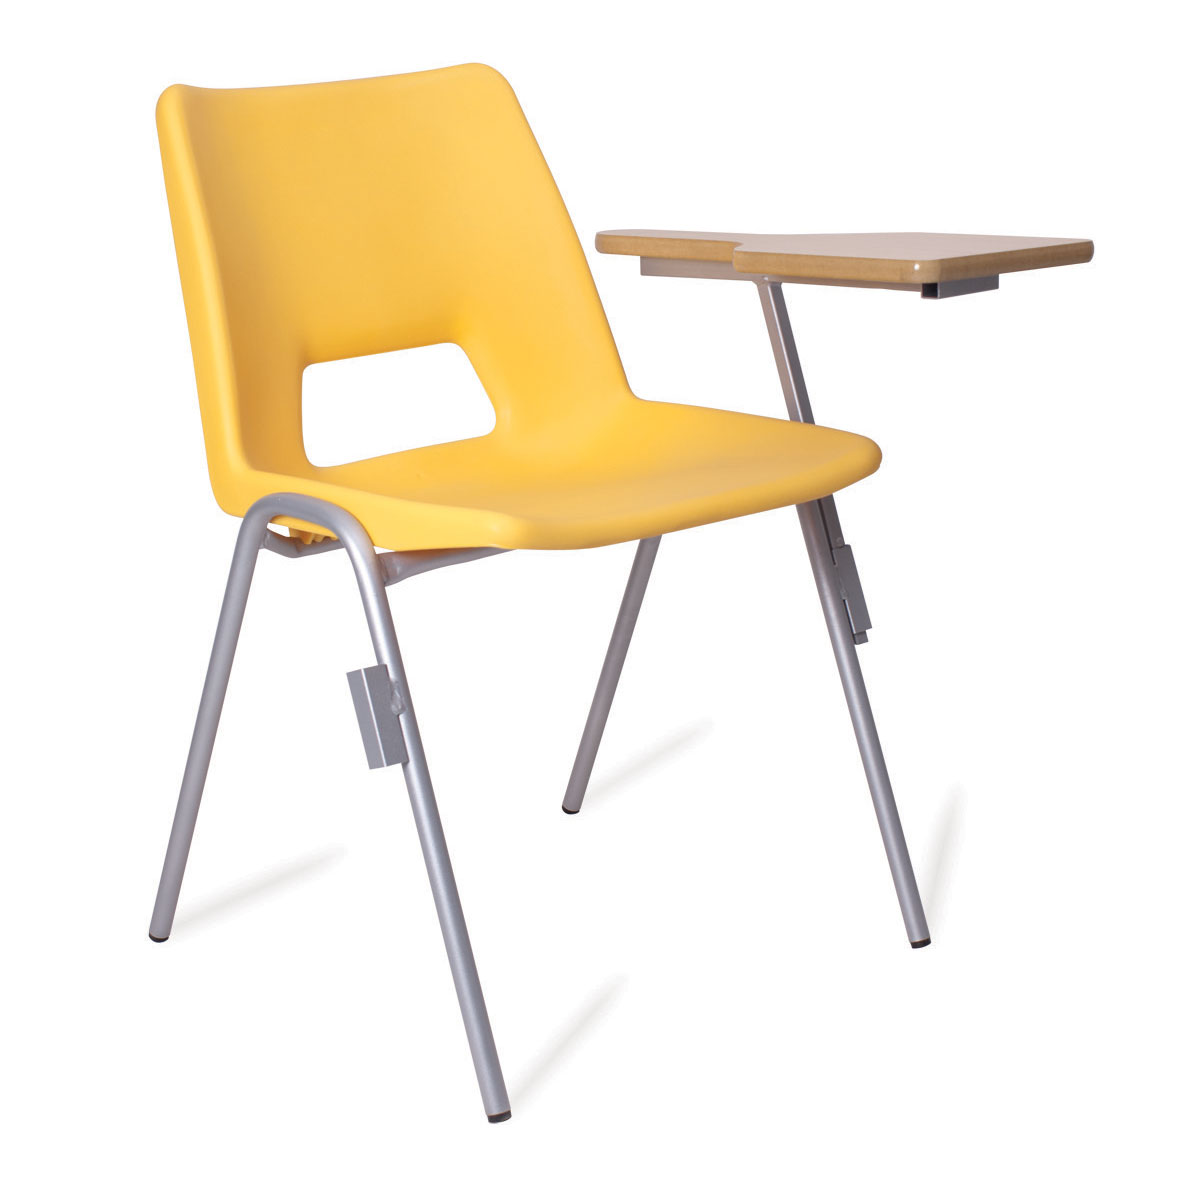 advanced 4 leg frame poly chair with writing tablet 430 or 460 mm